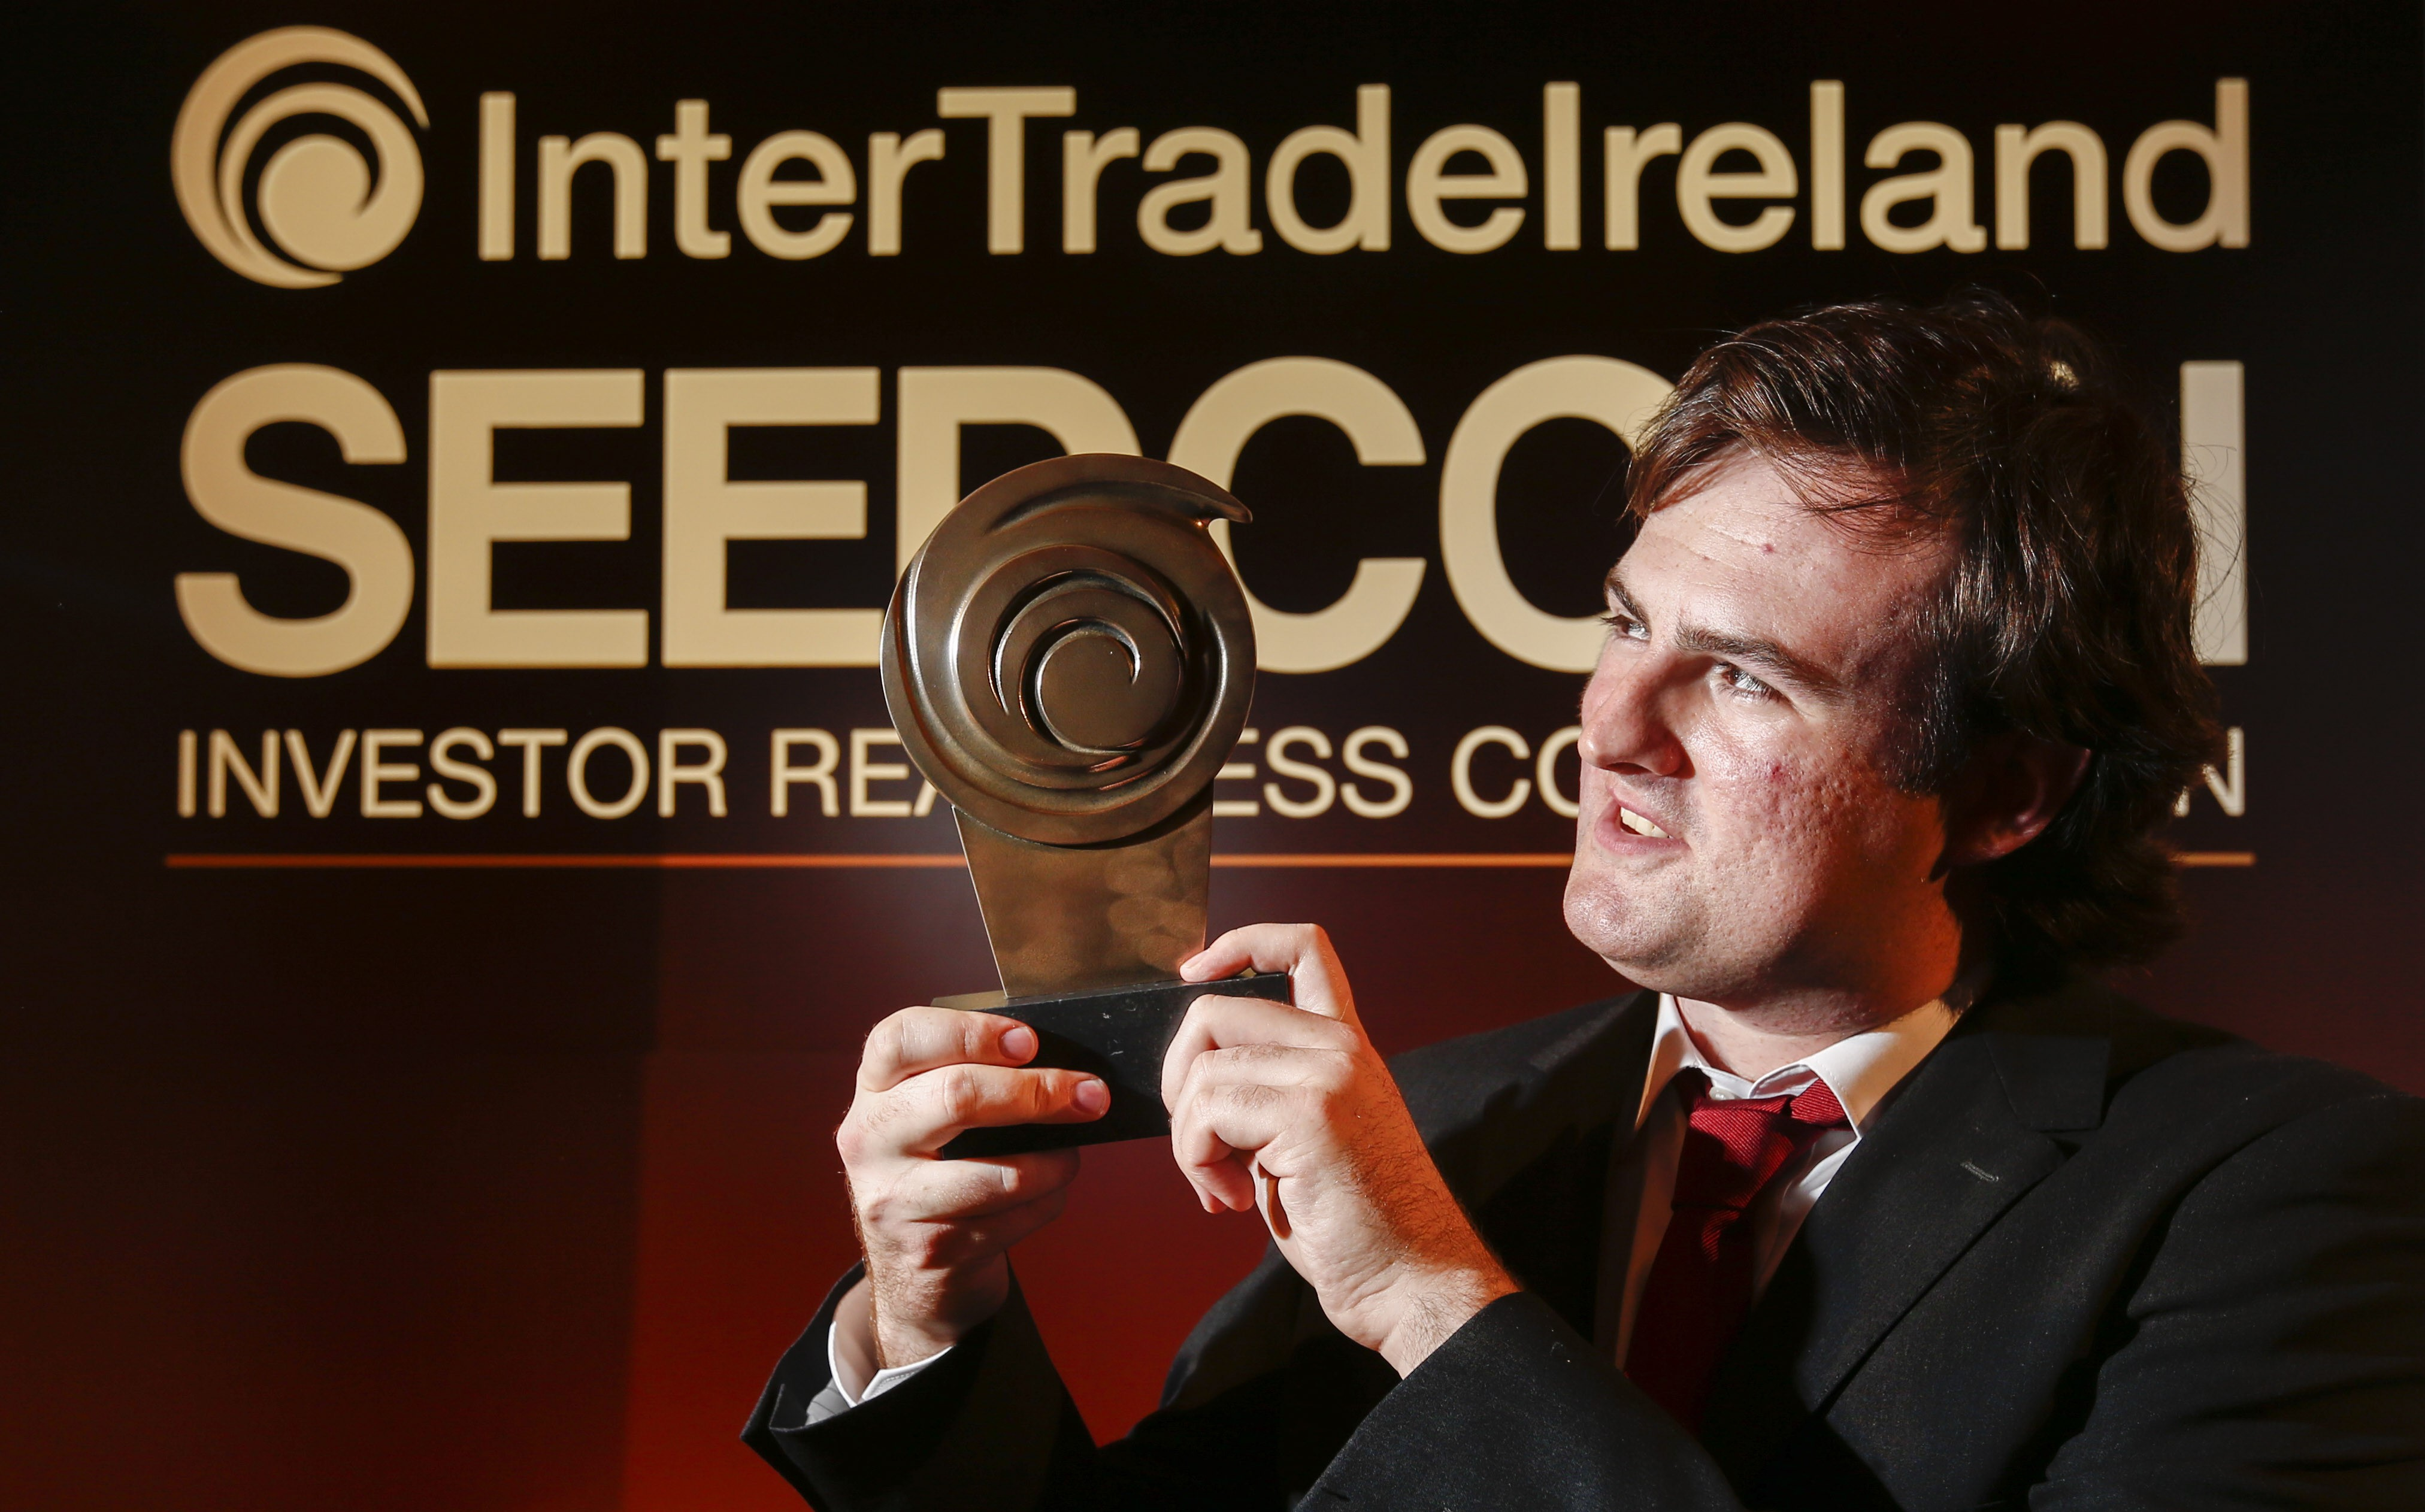 Patrickswell entrepreneur wins InterTradeIreland Seedcorn competition